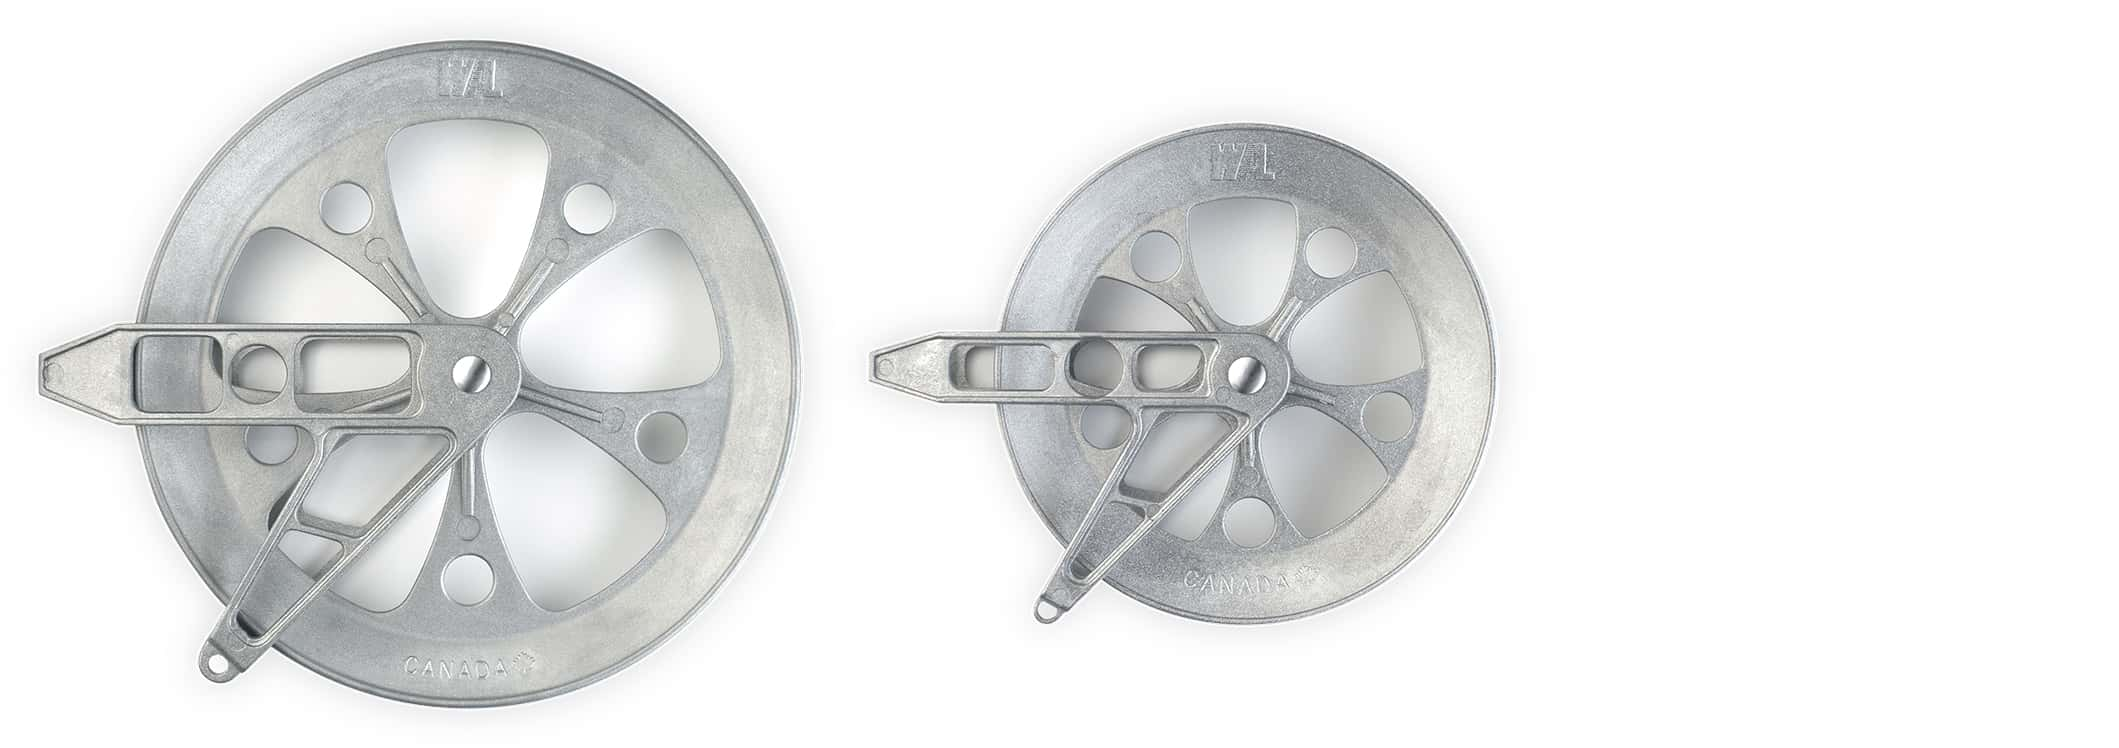 8-inch and 6-inch Pulley